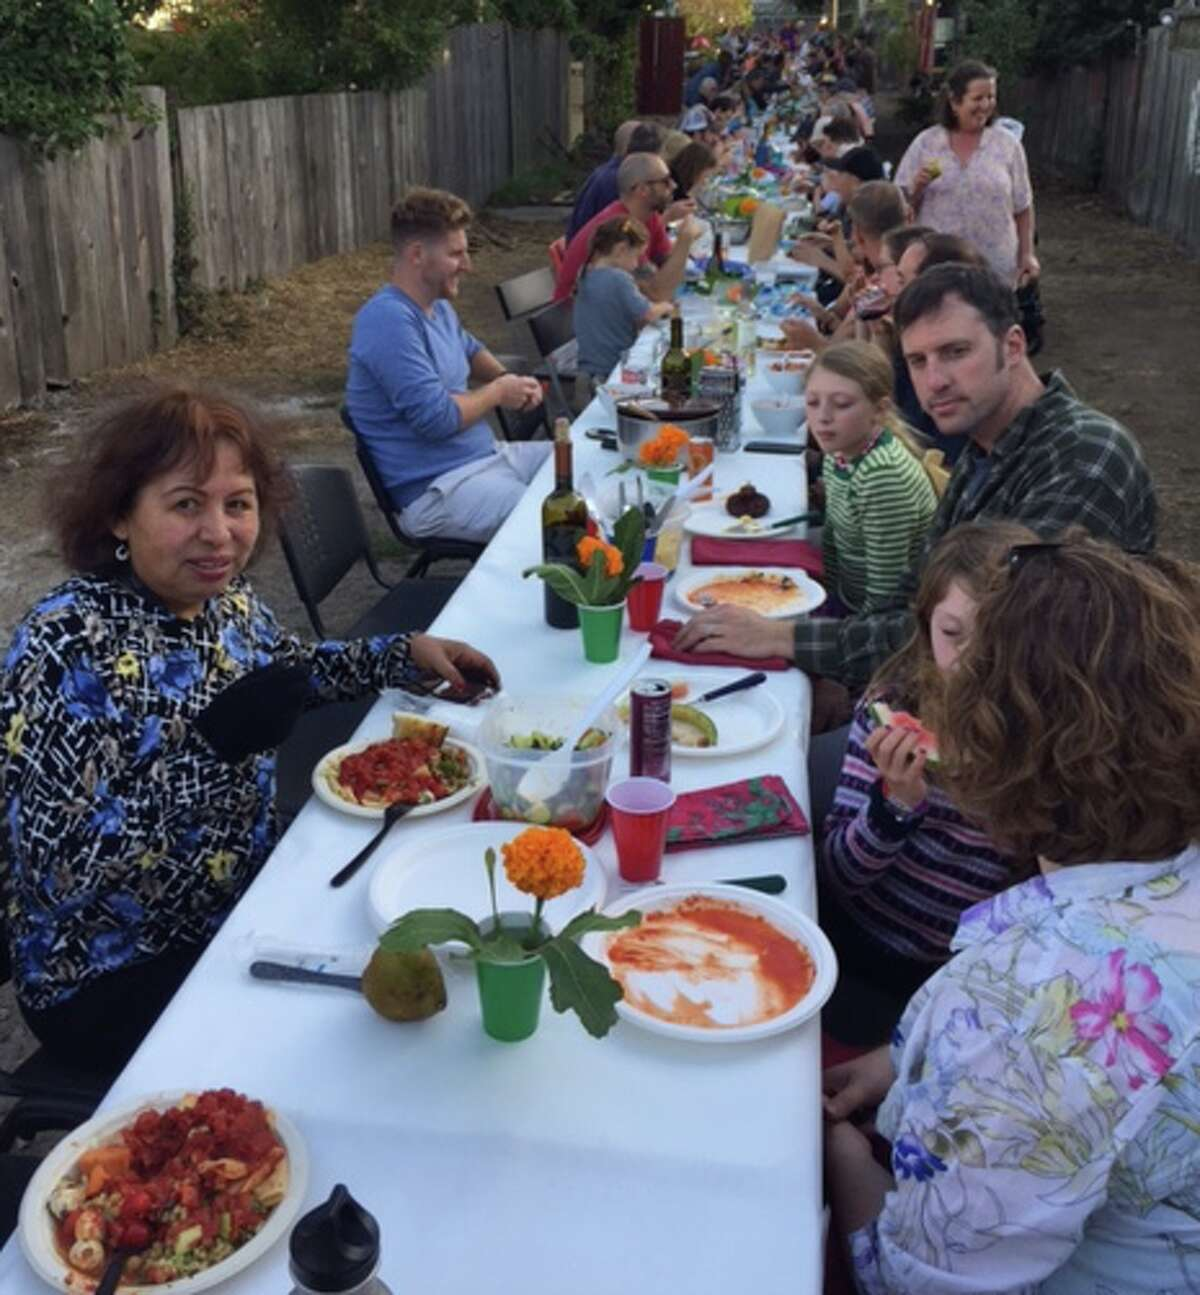 Everyone sits down for their pasta dinner at the annual Mission Terrace Alley Party.